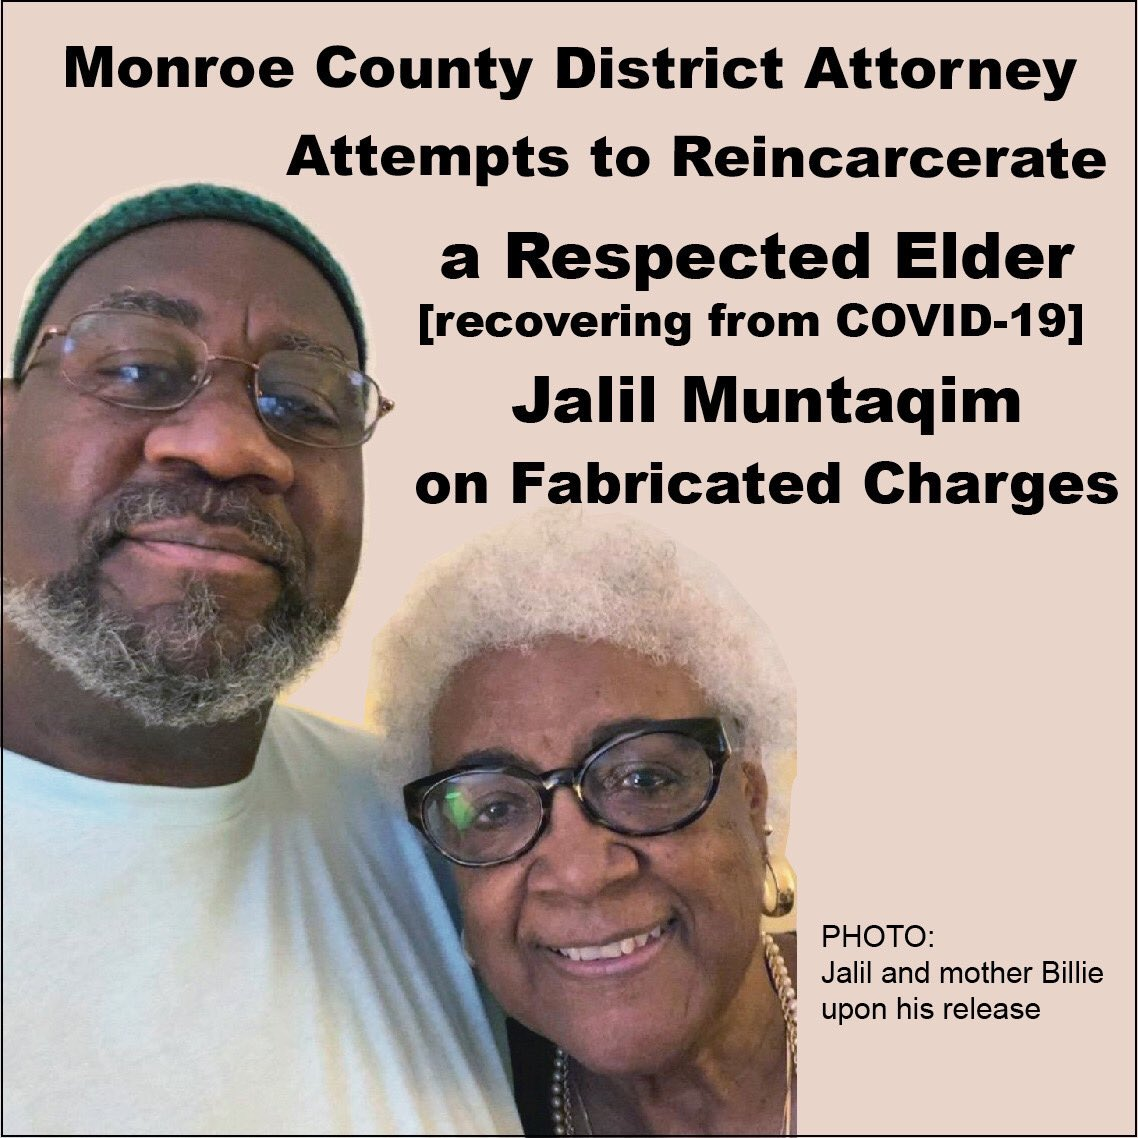 20201031_144243, Jalil Muntaqim, recently paroled after 49 years, was arrested Friday and is facing re-imprisonment for completing a voter registration form, National News & Views